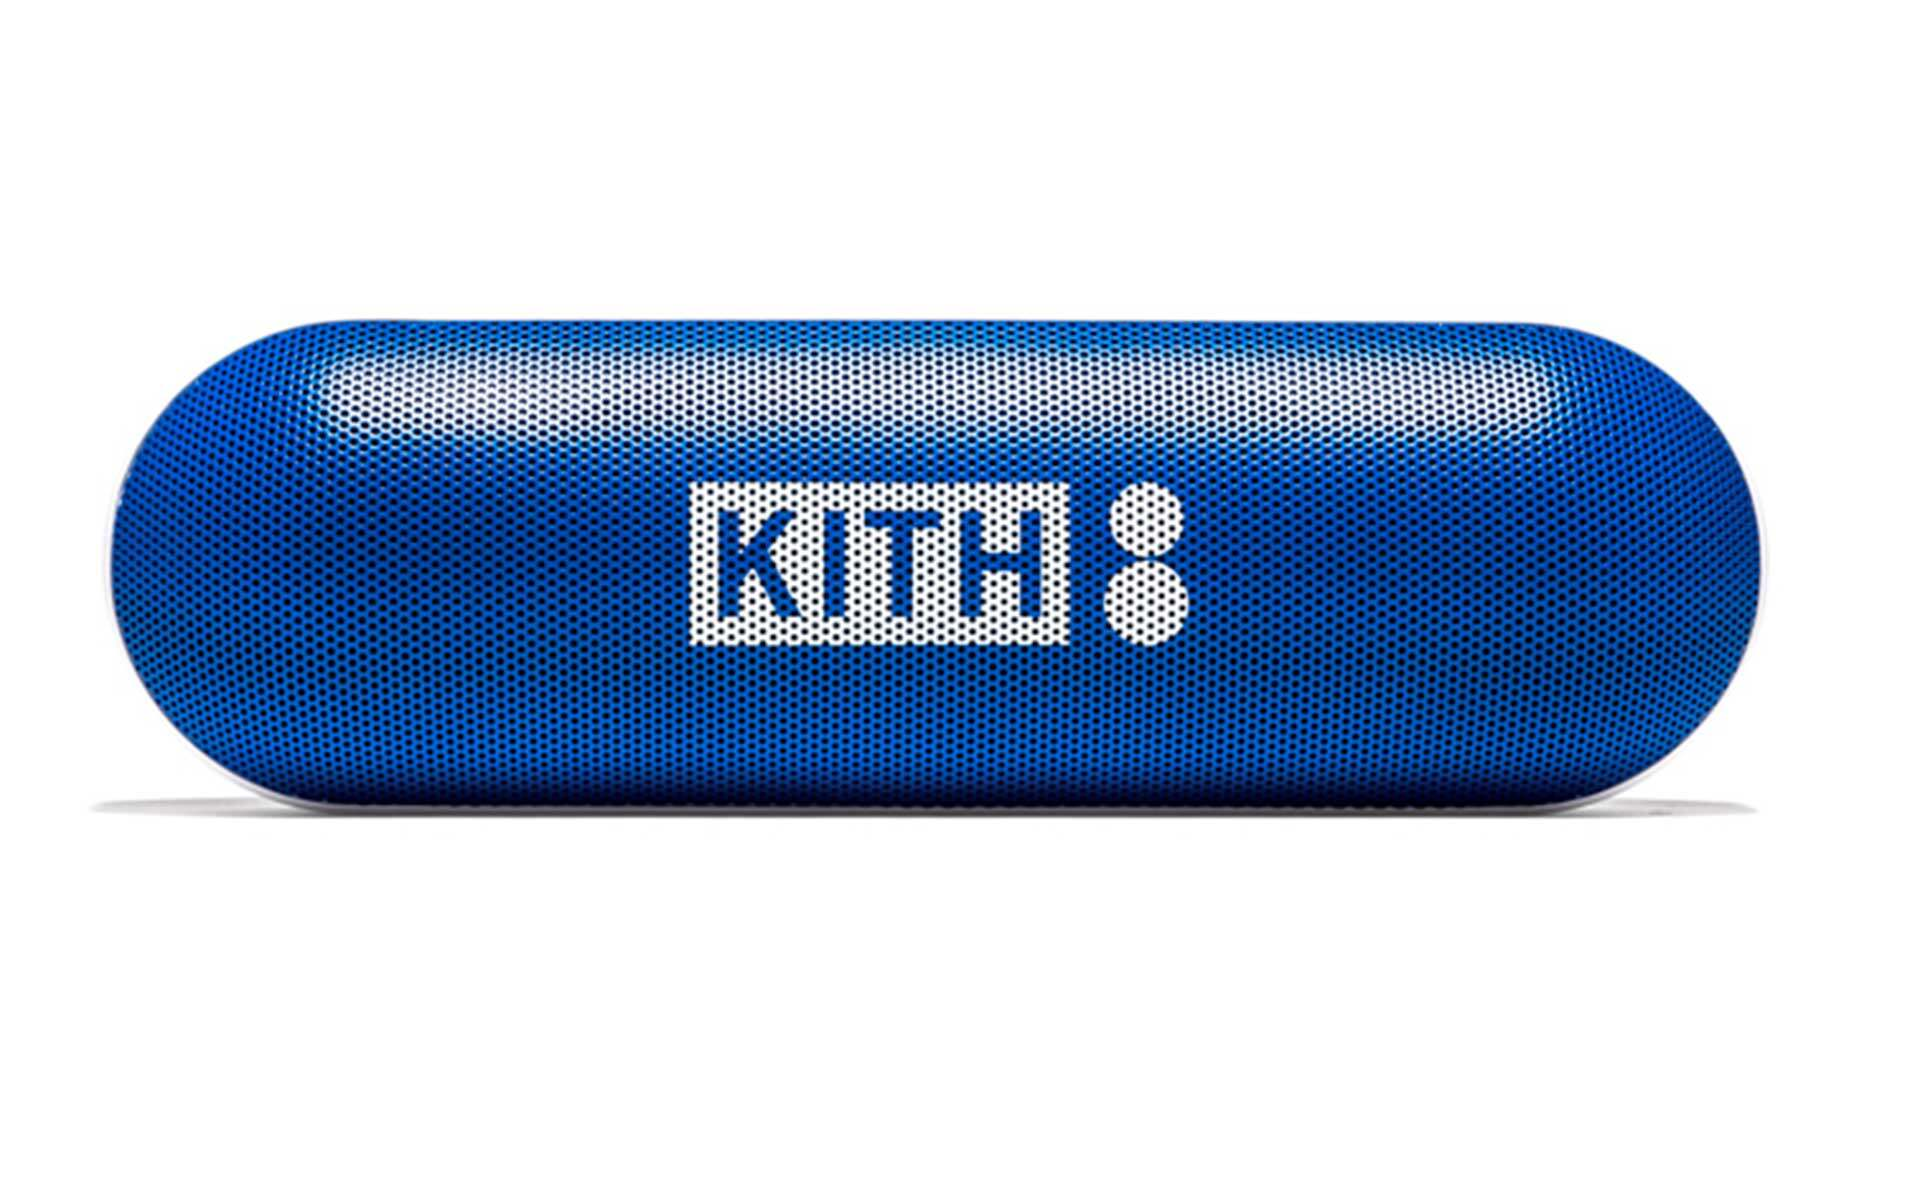 Beats by Dr. Dre X KITH|Colette